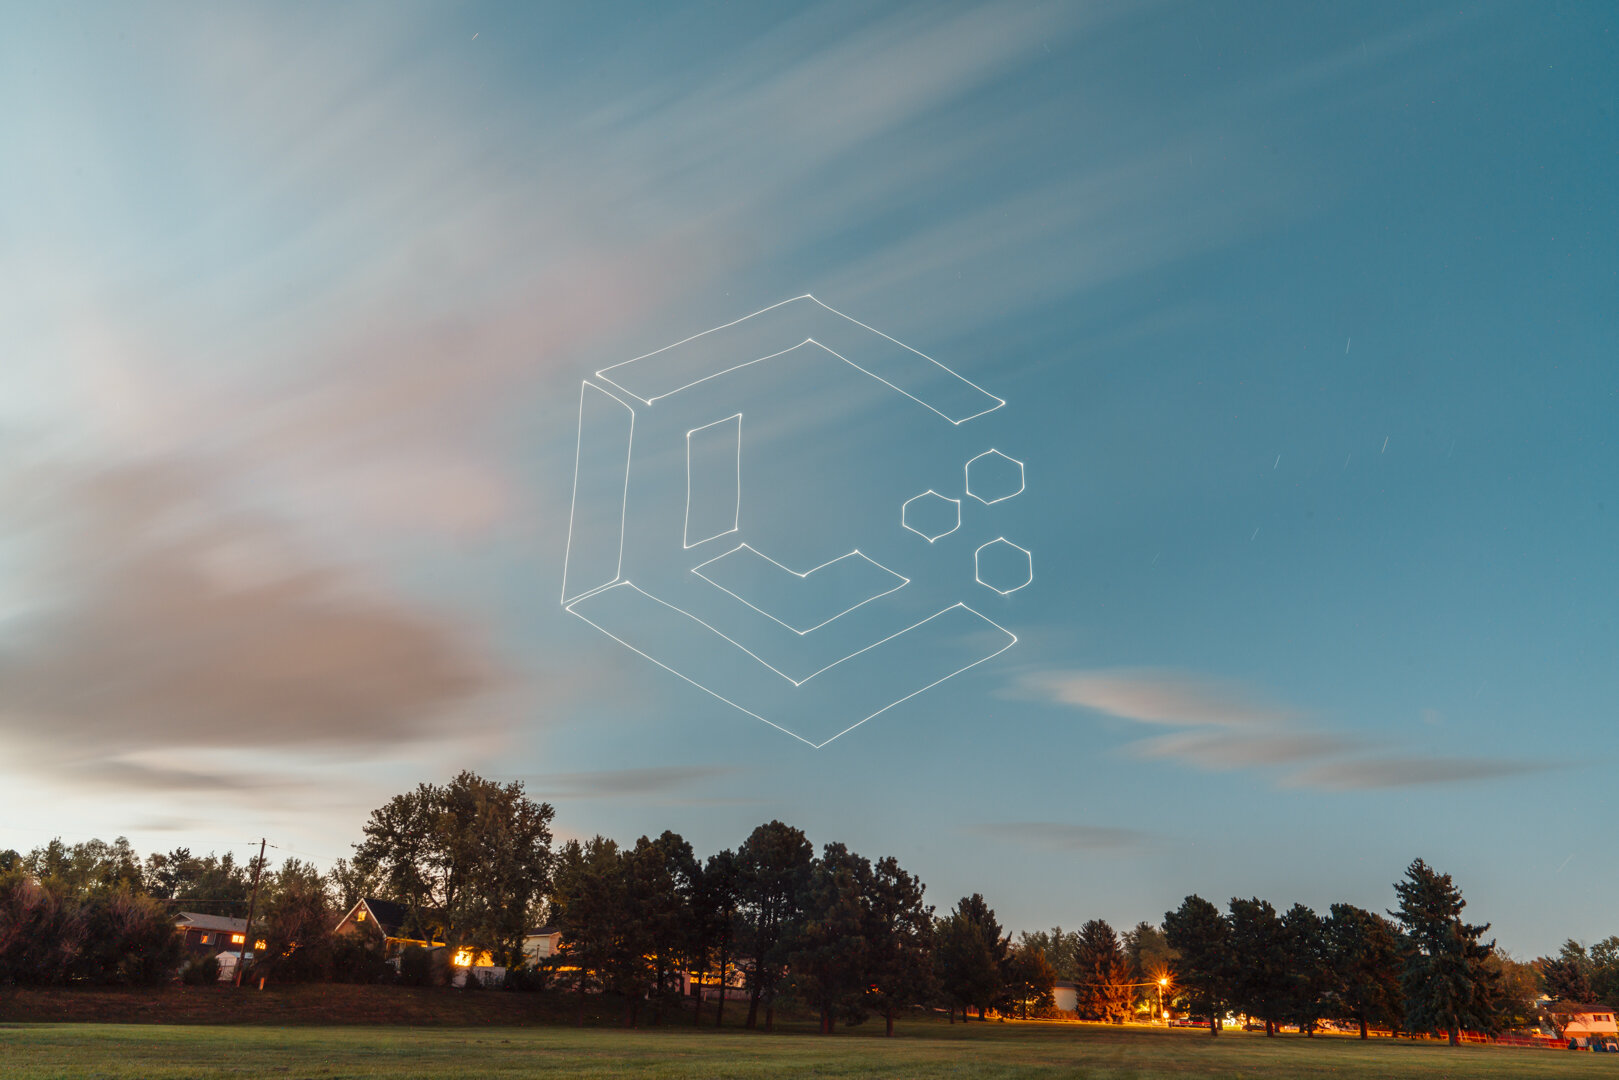 lume cube drone light painting